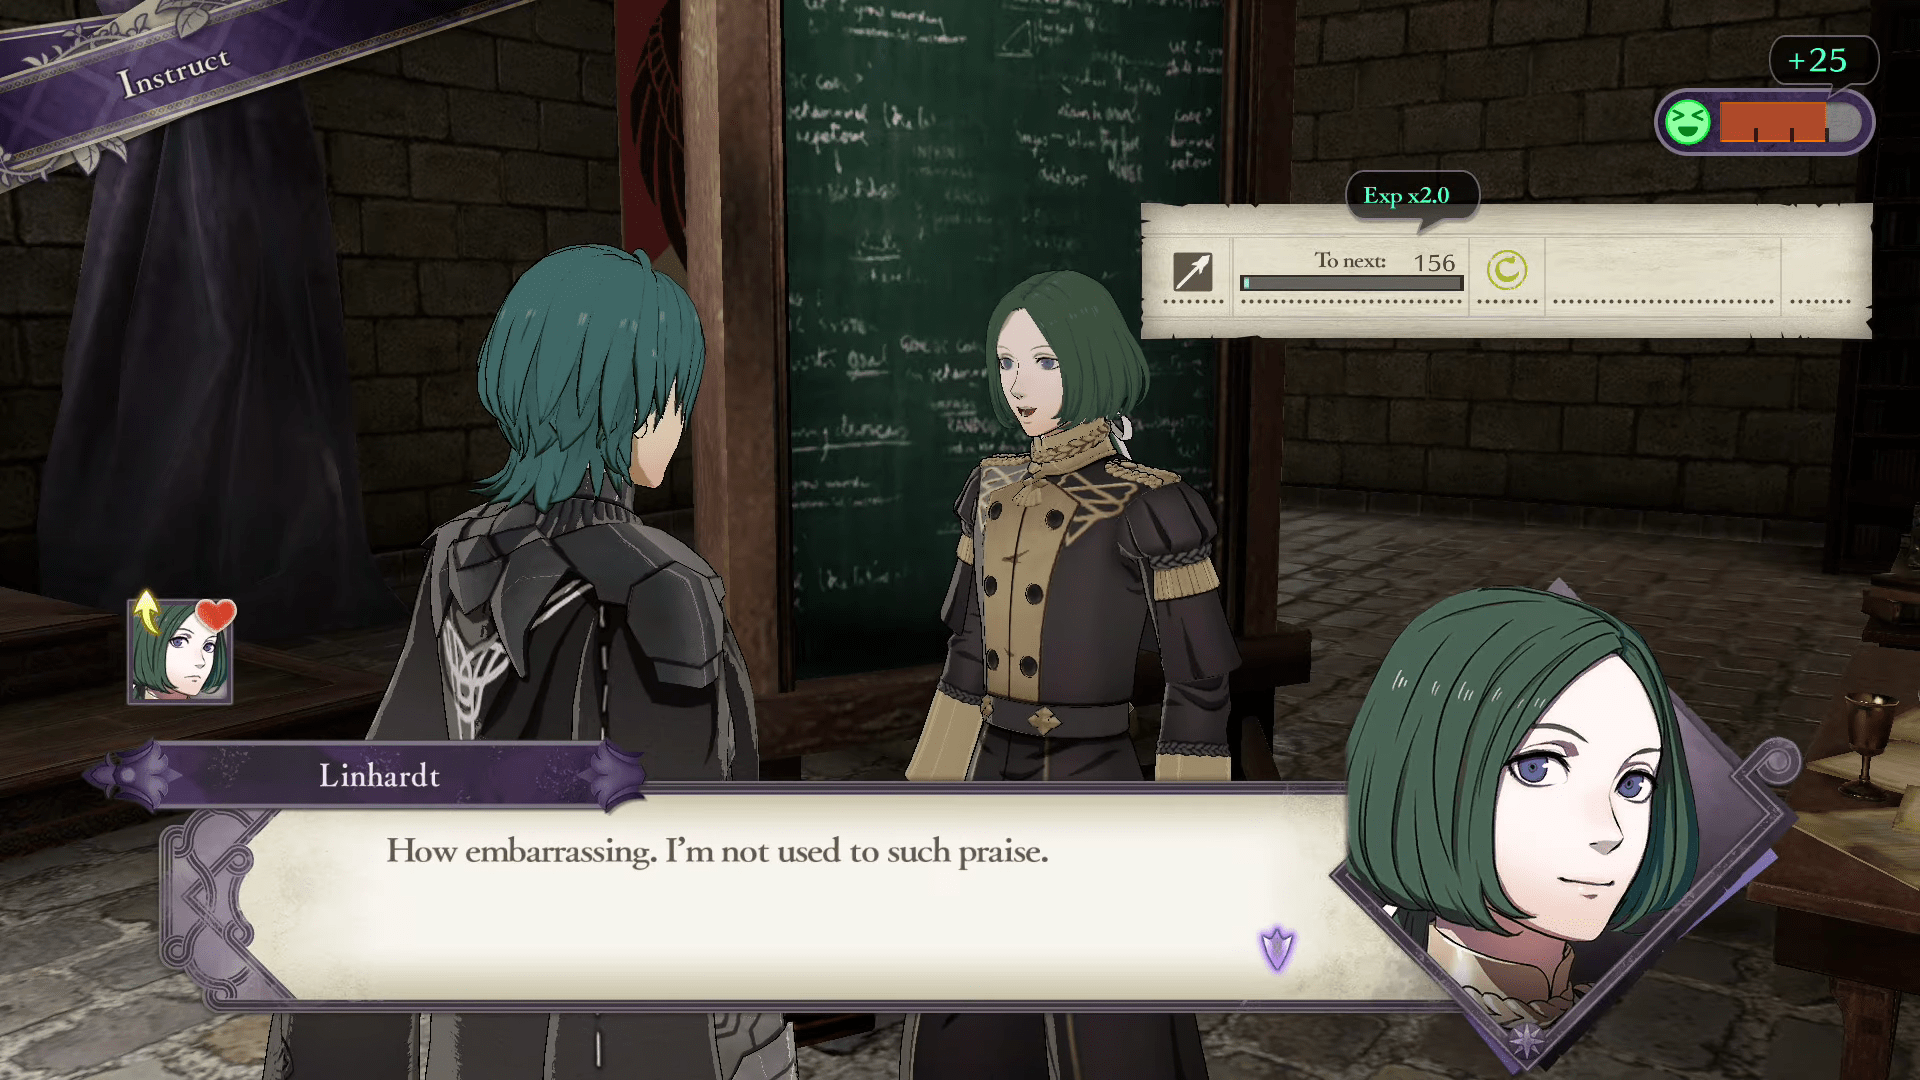 Nintendo of America Says Fire Emblem: Three Houses Allows Same-Sex Relationships With Its Characters